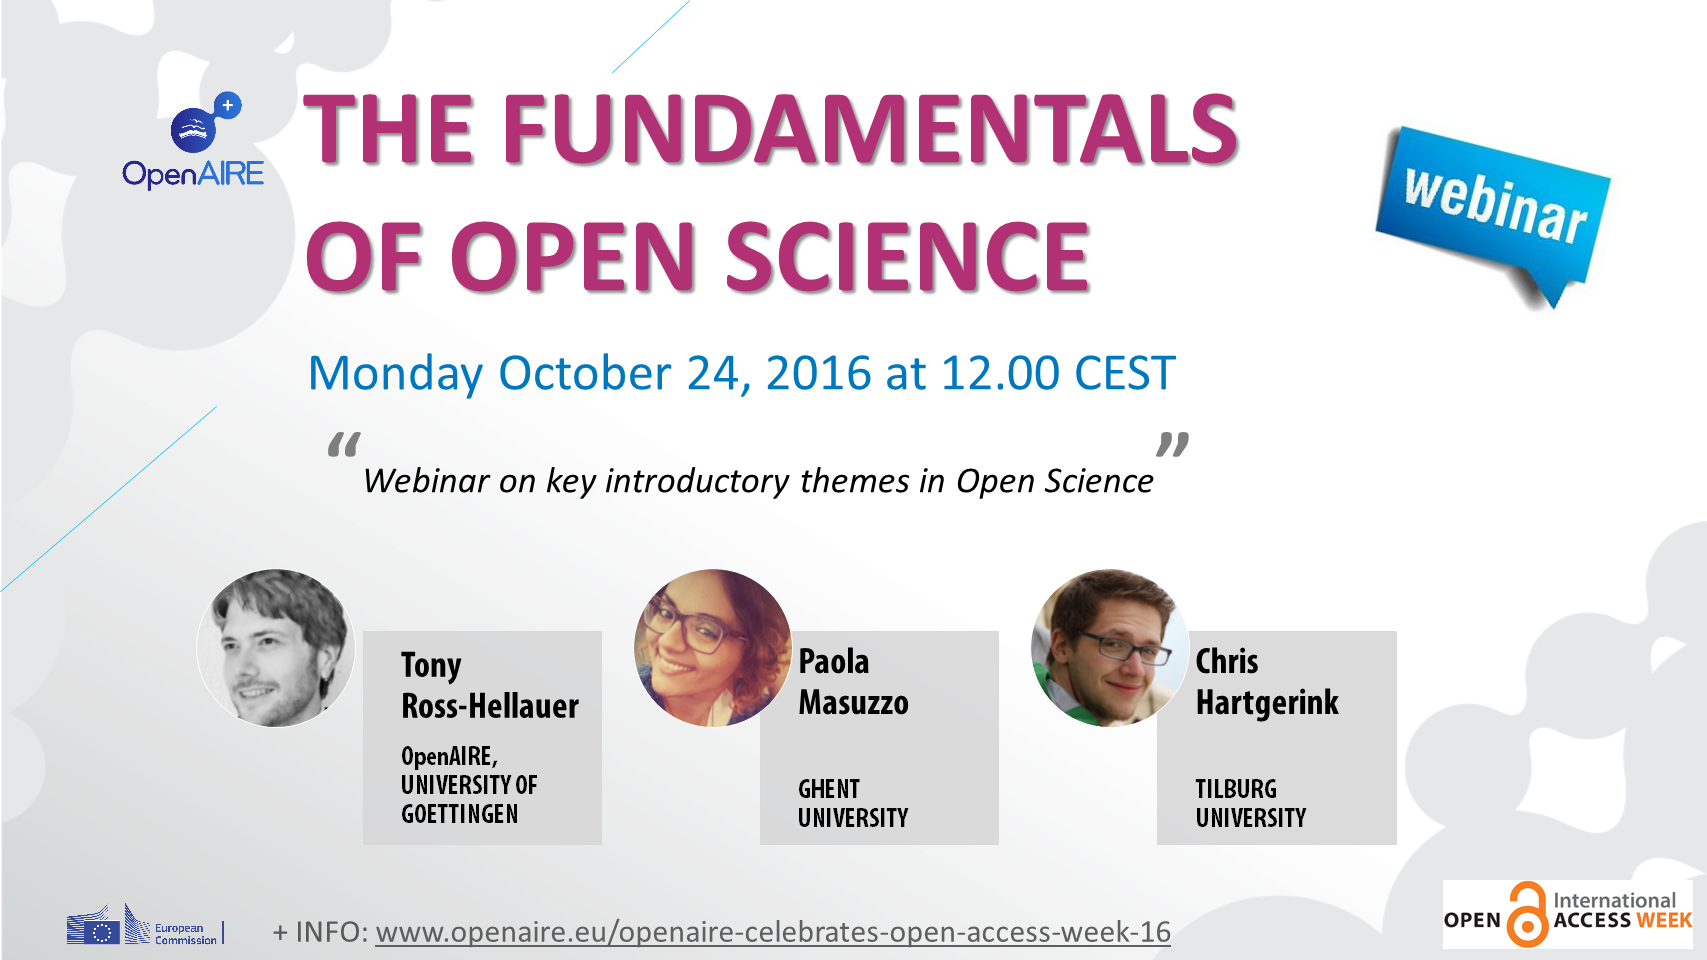 The fundamentals of Open Science